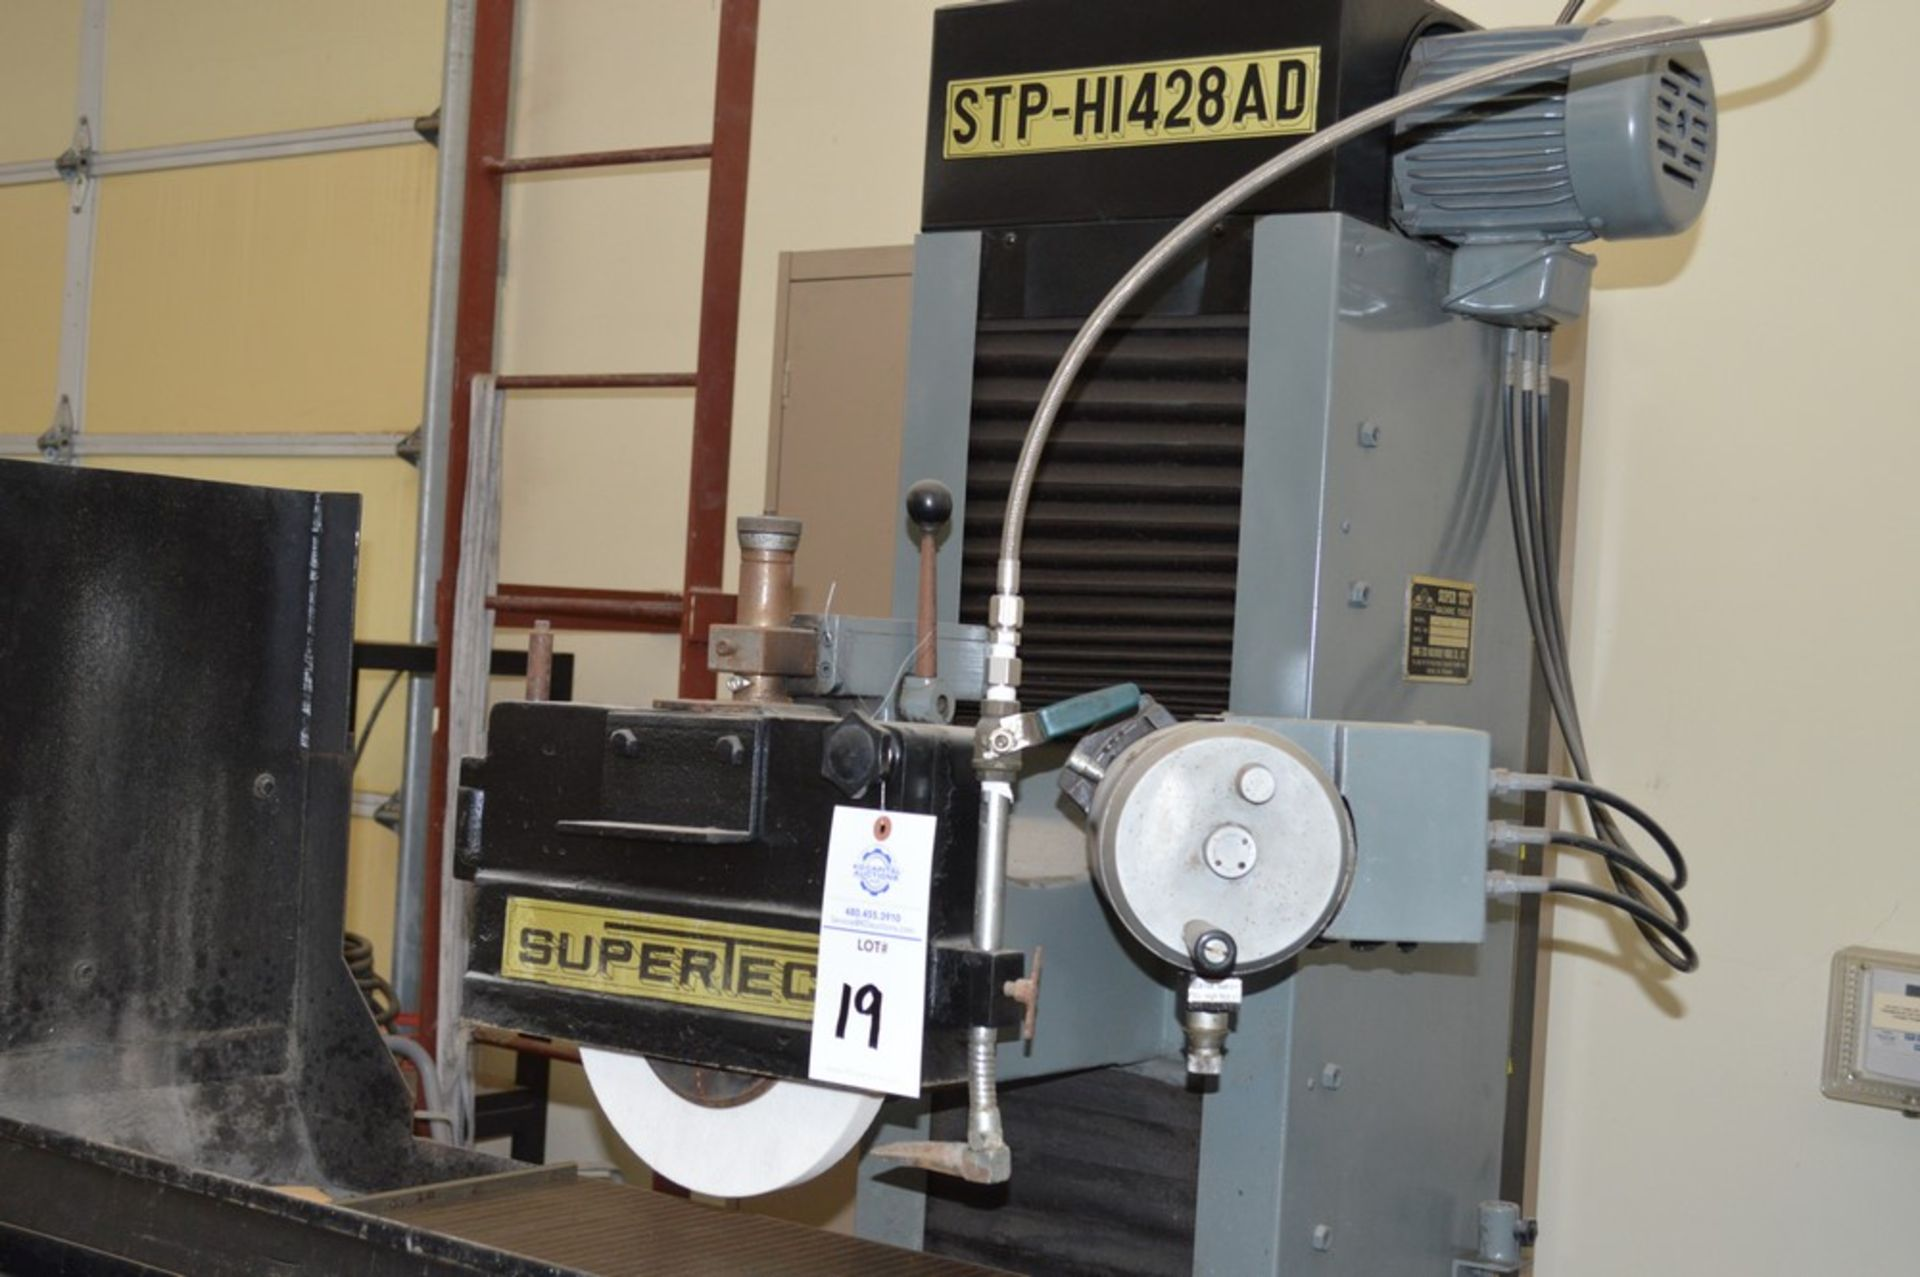 Supertec, STP-H1428 AD Grinder, Full three axis hydraulics, 12 x 27 magnetic chuck